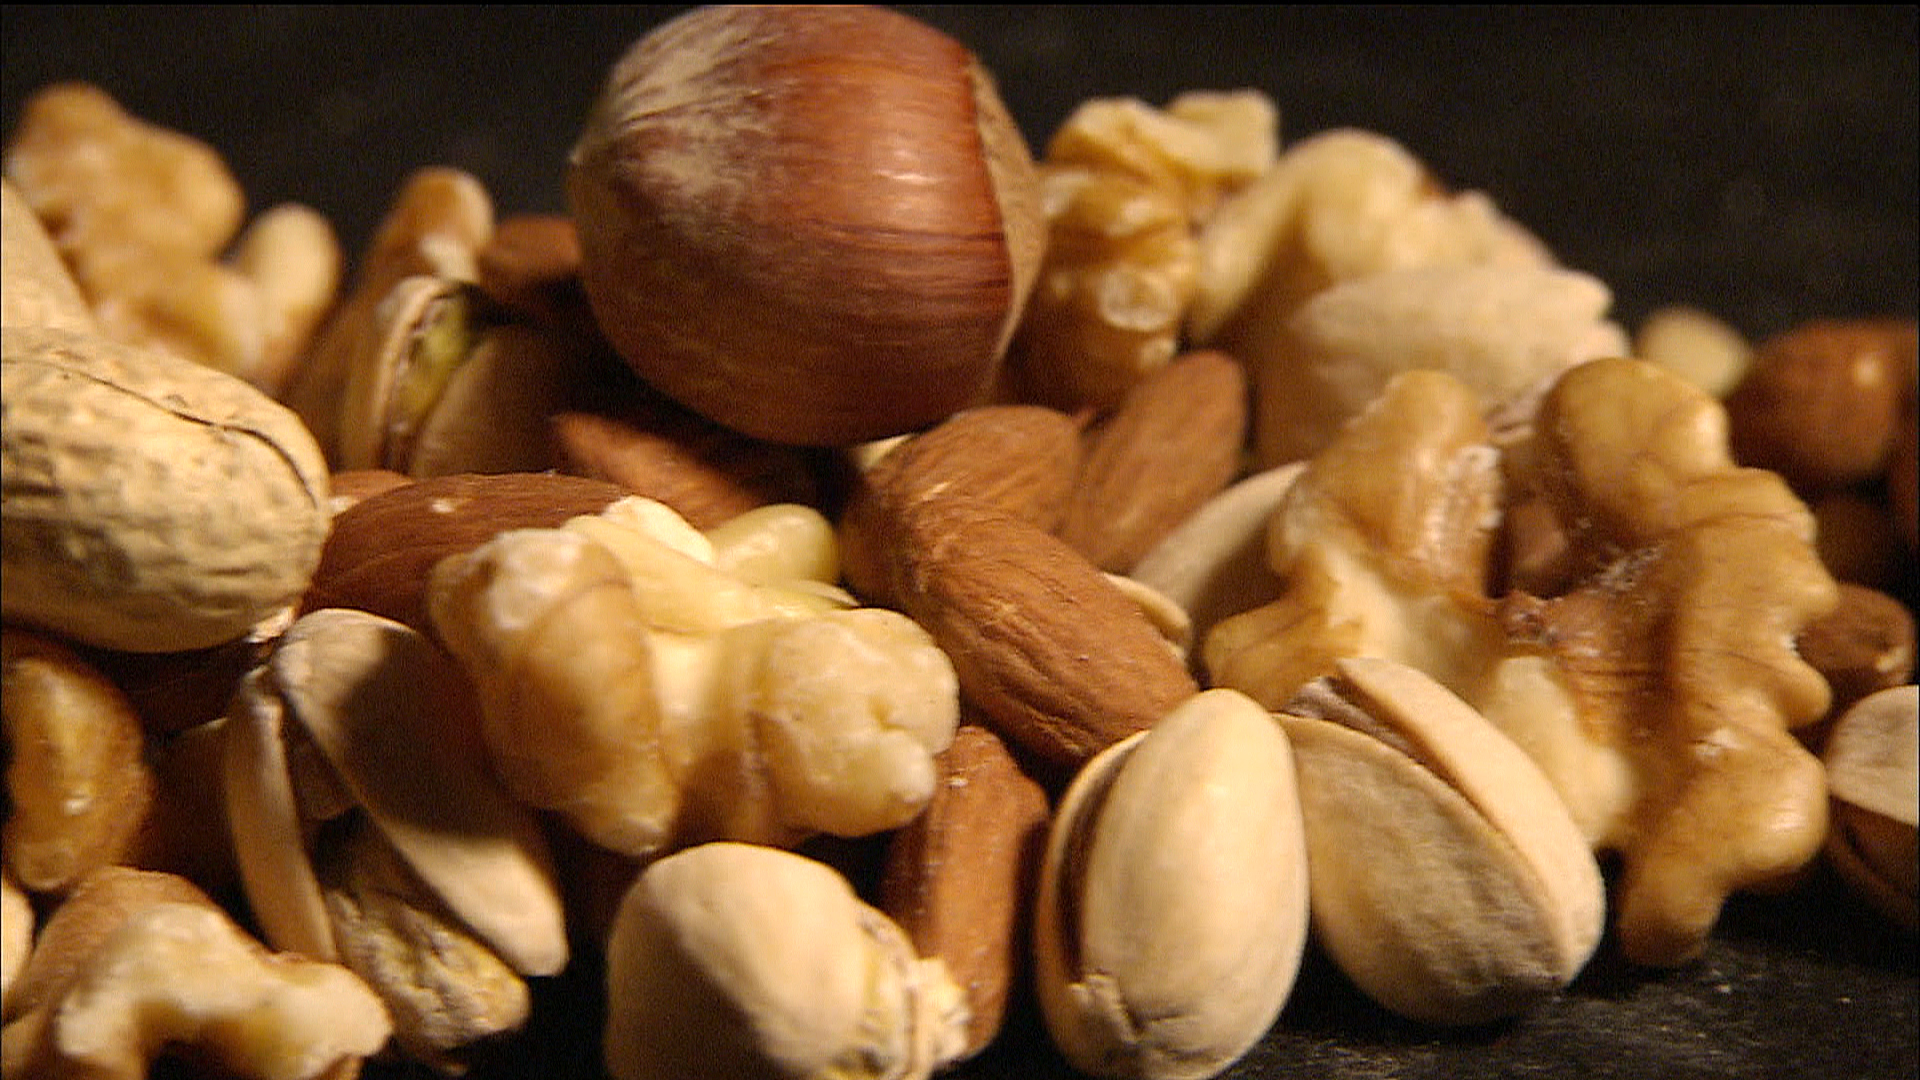 Go nuts! A handful a day may help you live longer, docs say